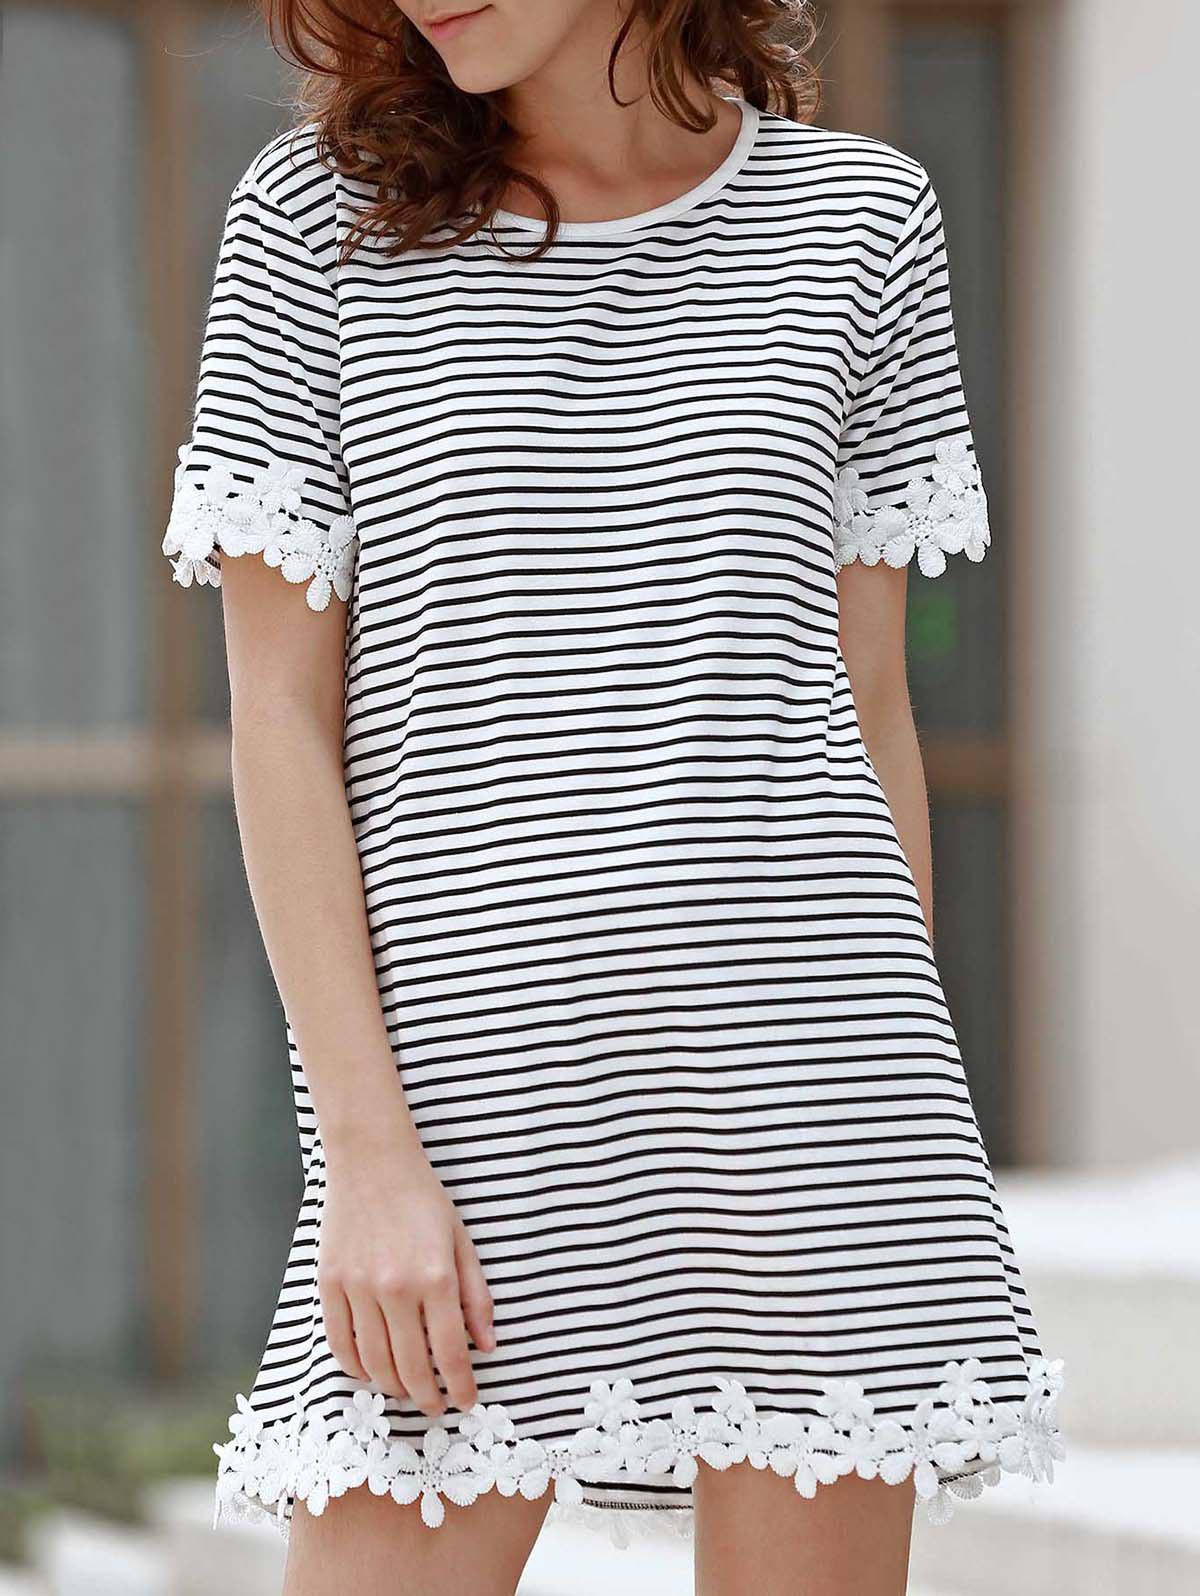 Sweet Style Round Neck Short Sleeve Striped Laciness A-Line Women's T-Shirt - WHITE/BLACK S